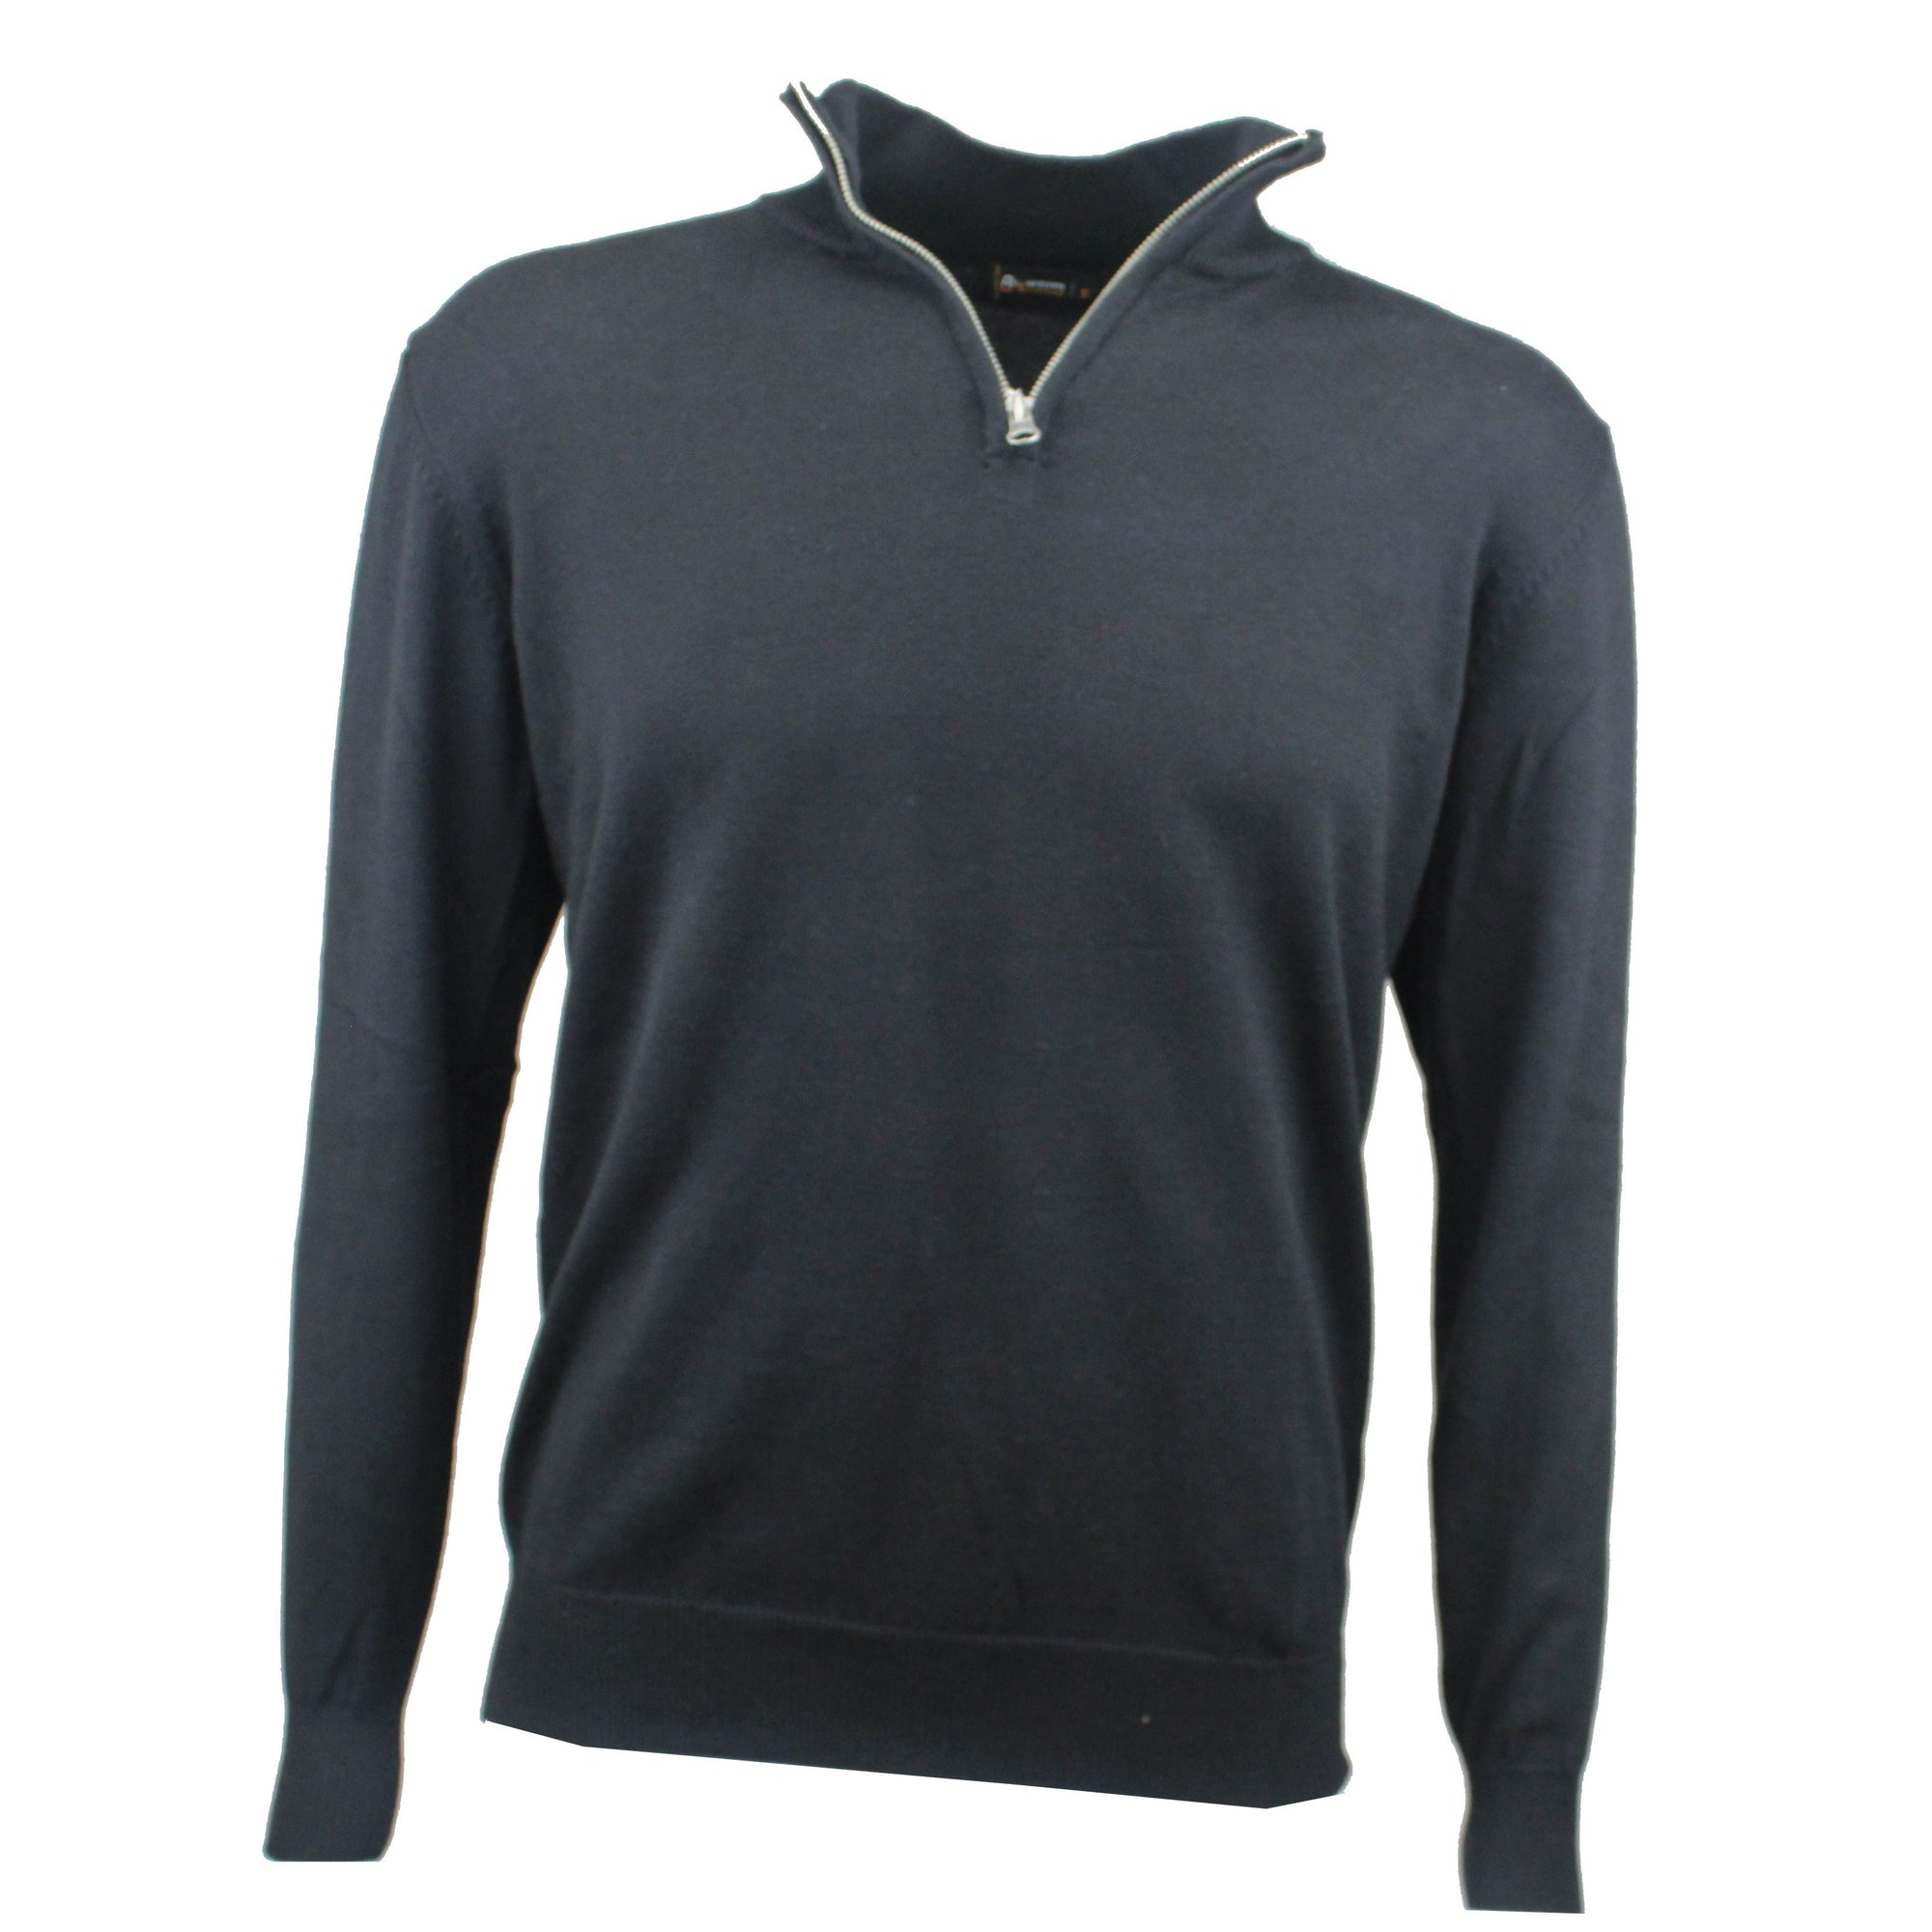 Druids Golf - Cotton Zip Neck Sweater (Black)